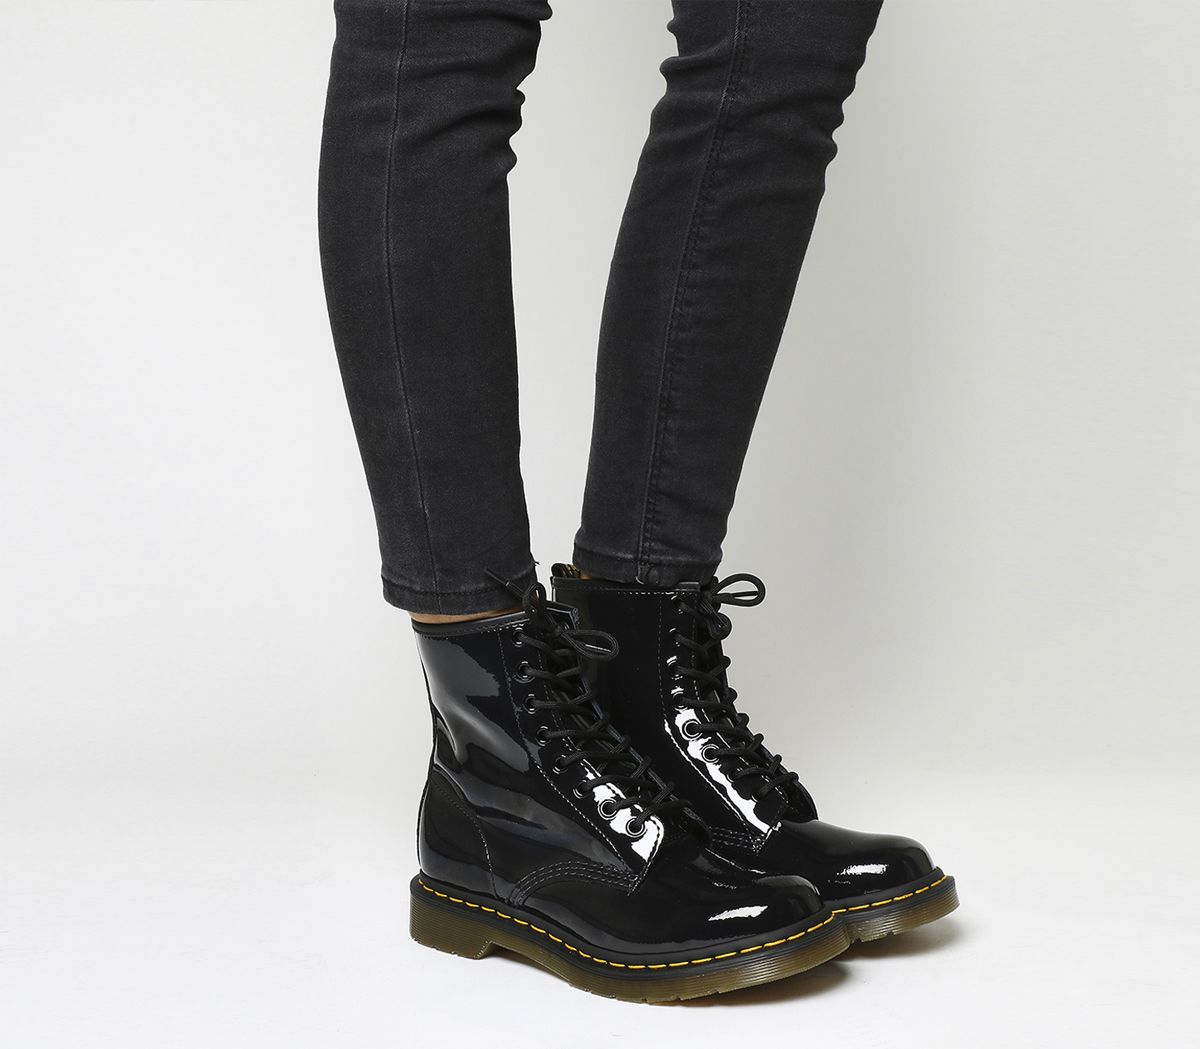 7755fd126fa 8 Eyelet Lace Up Boots